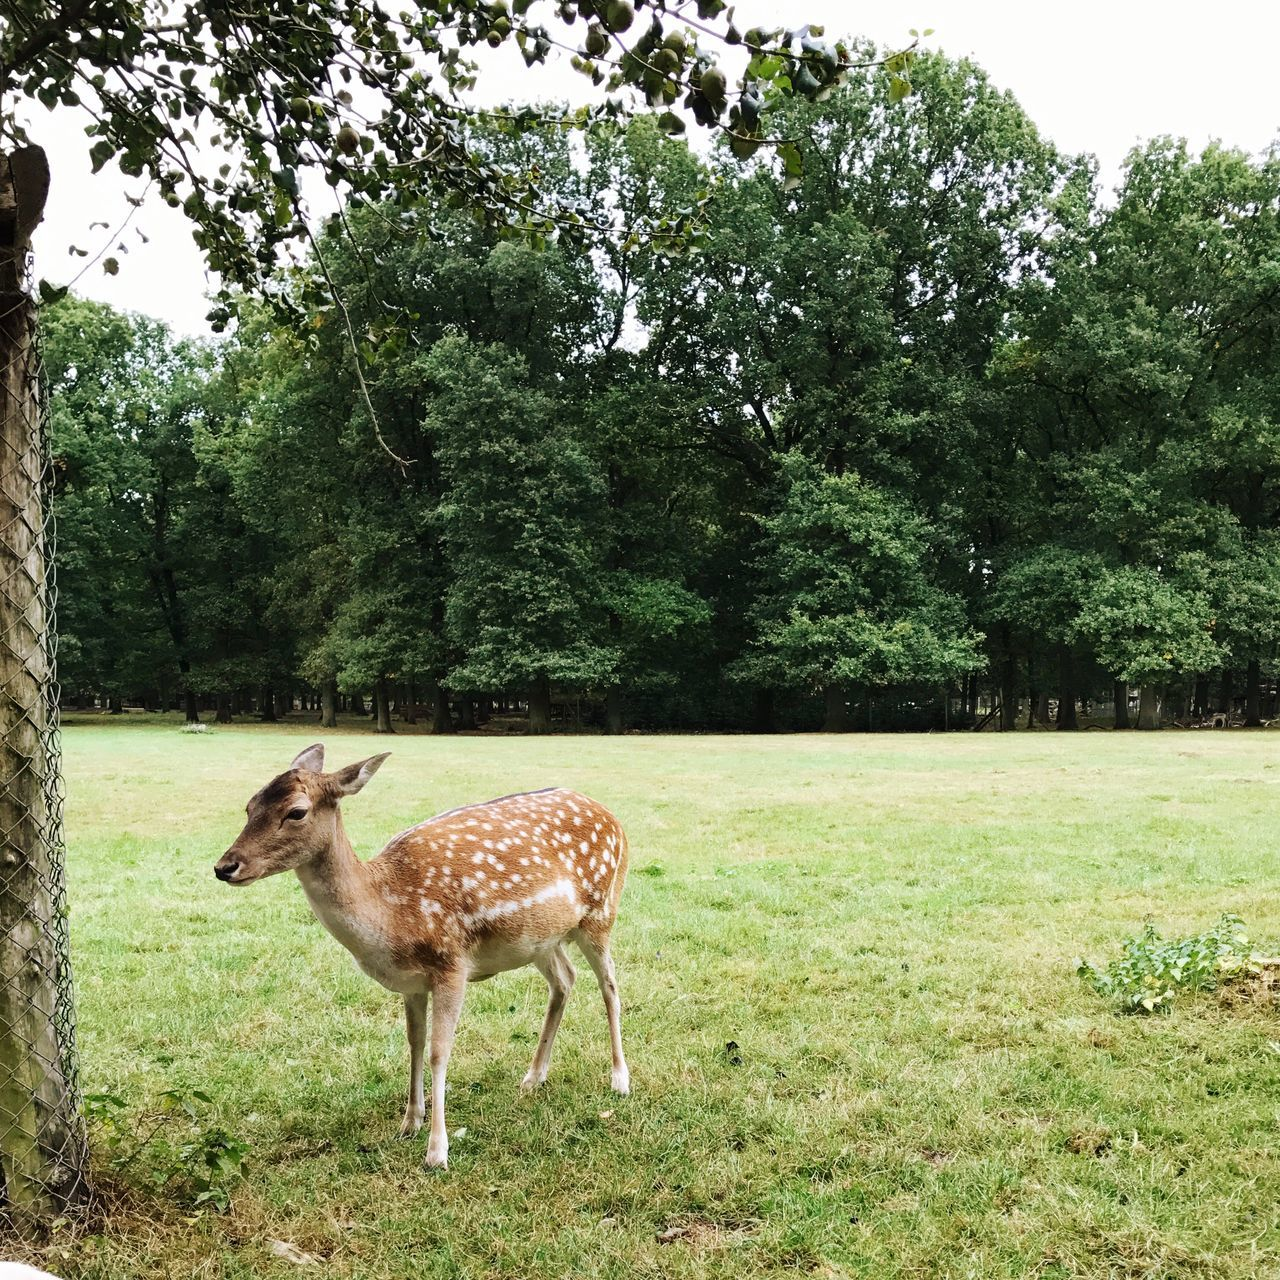 tree, animal themes, one animal, day, field, mammal, nature, no people, standing, grass, full length, animals in the wild, growth, outdoors, beauty in nature